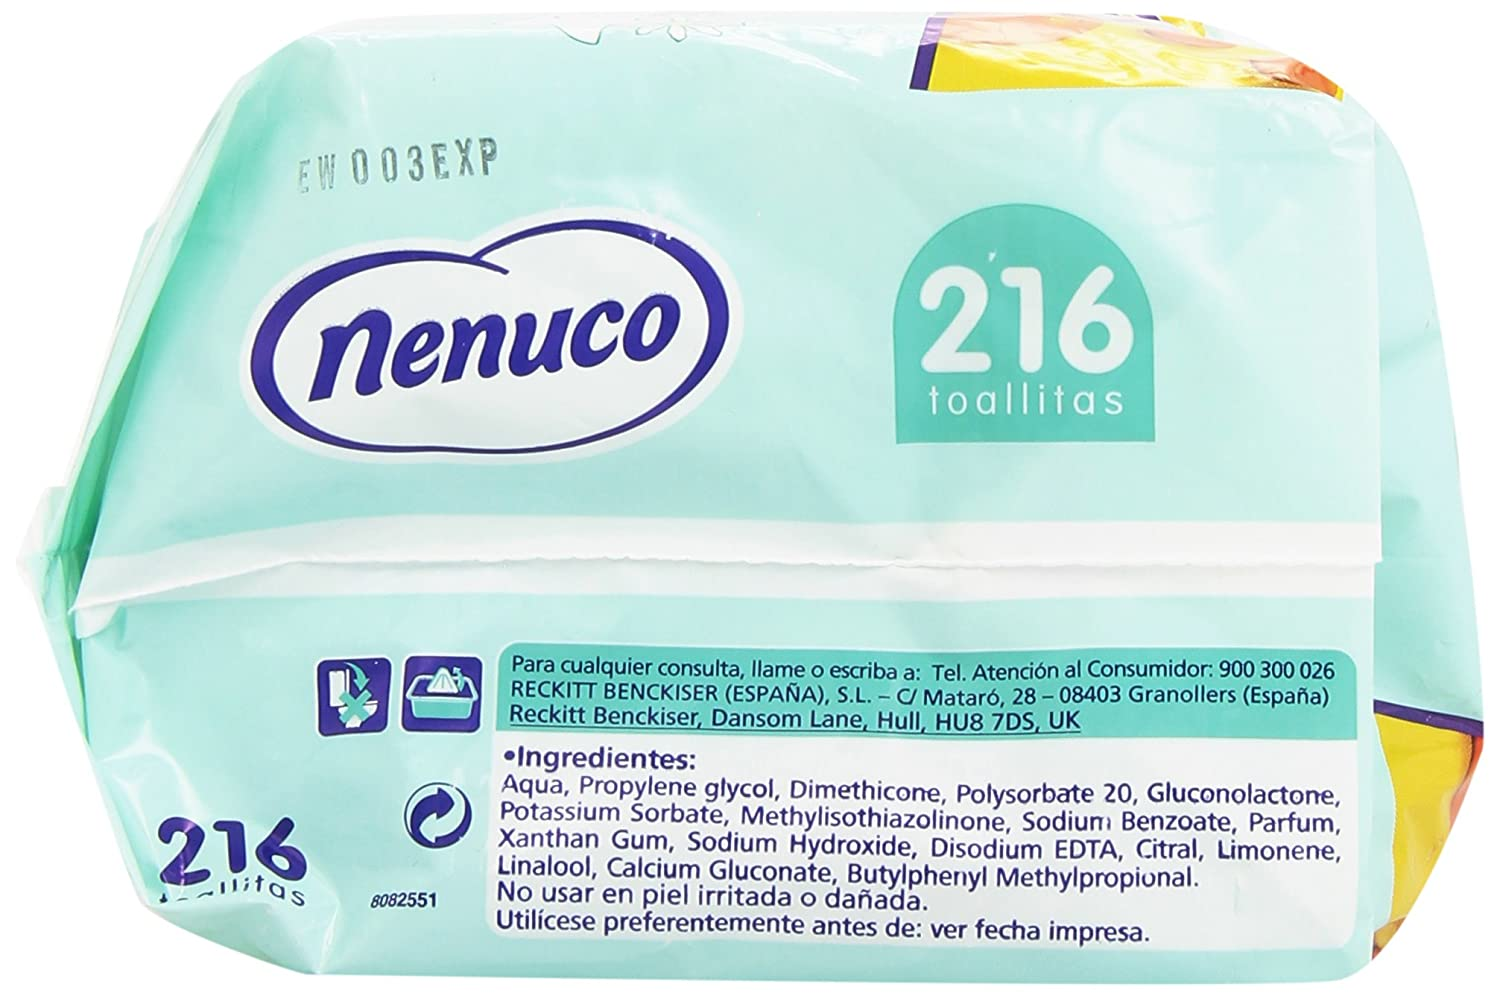 Nenuco Toallitas Dermosensitive para pieles sensibles - 216 unidades: Amazon.es: Amazon Pantry